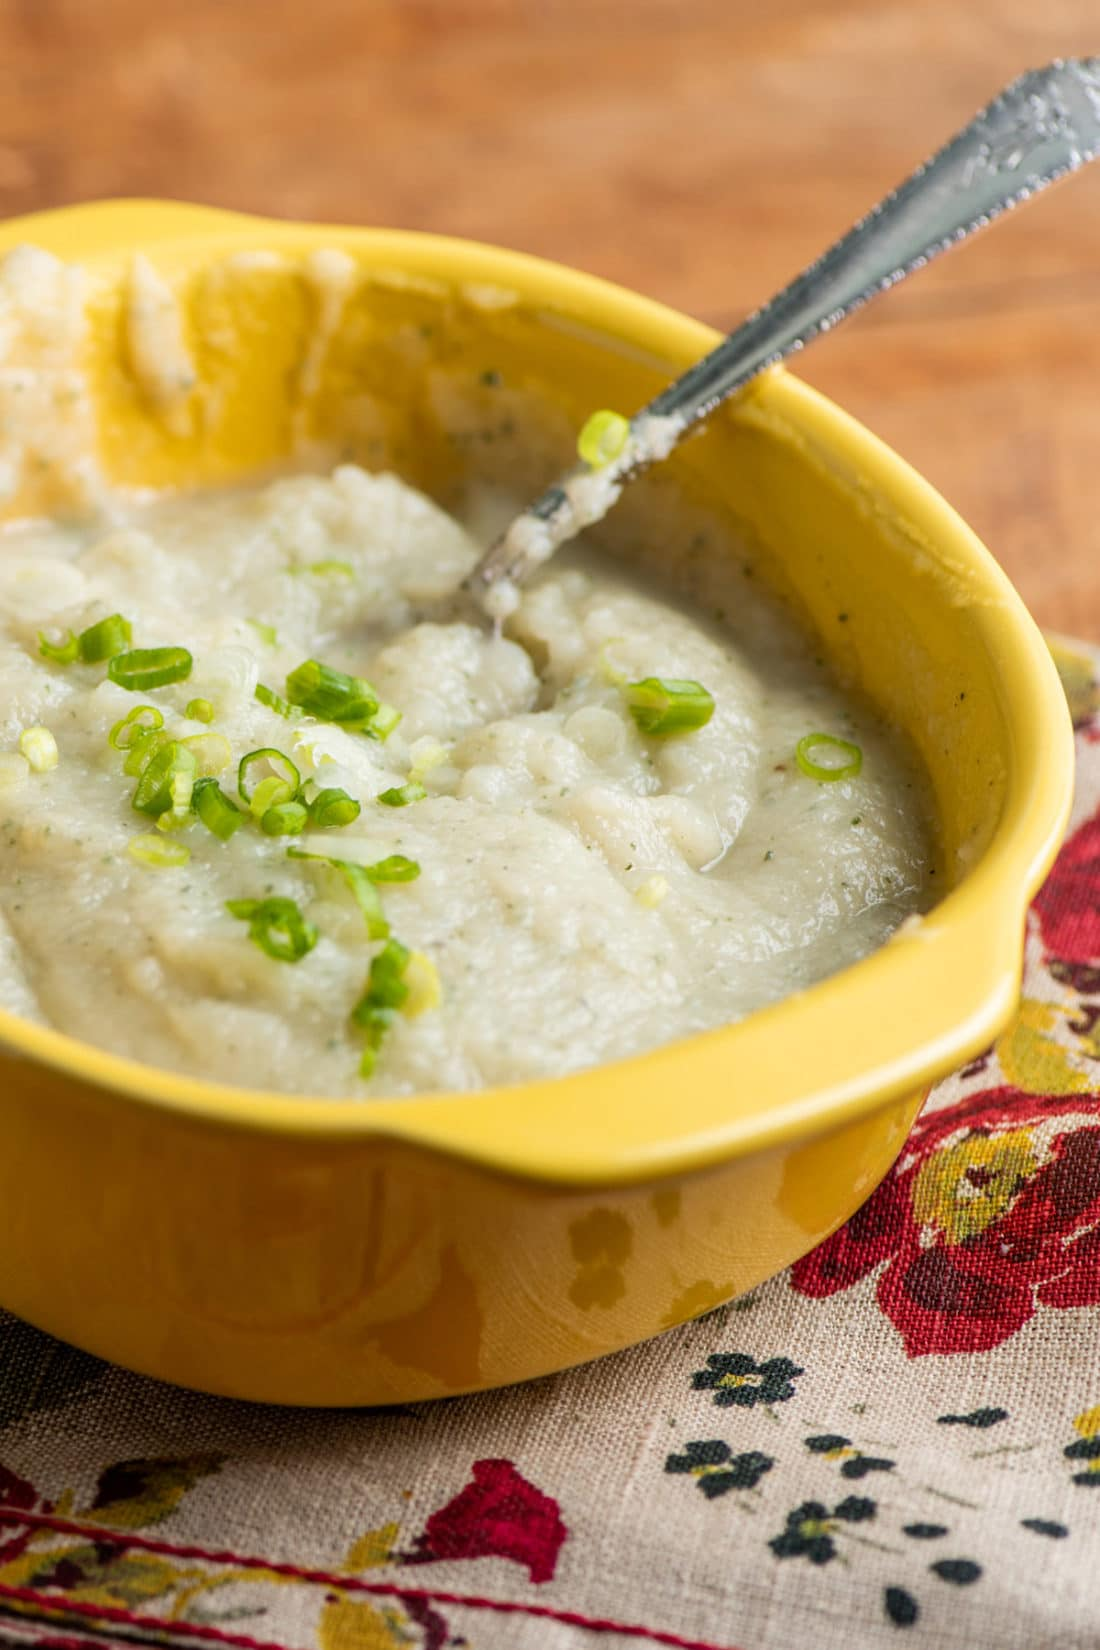 Healthy Side Dishes for Turkey